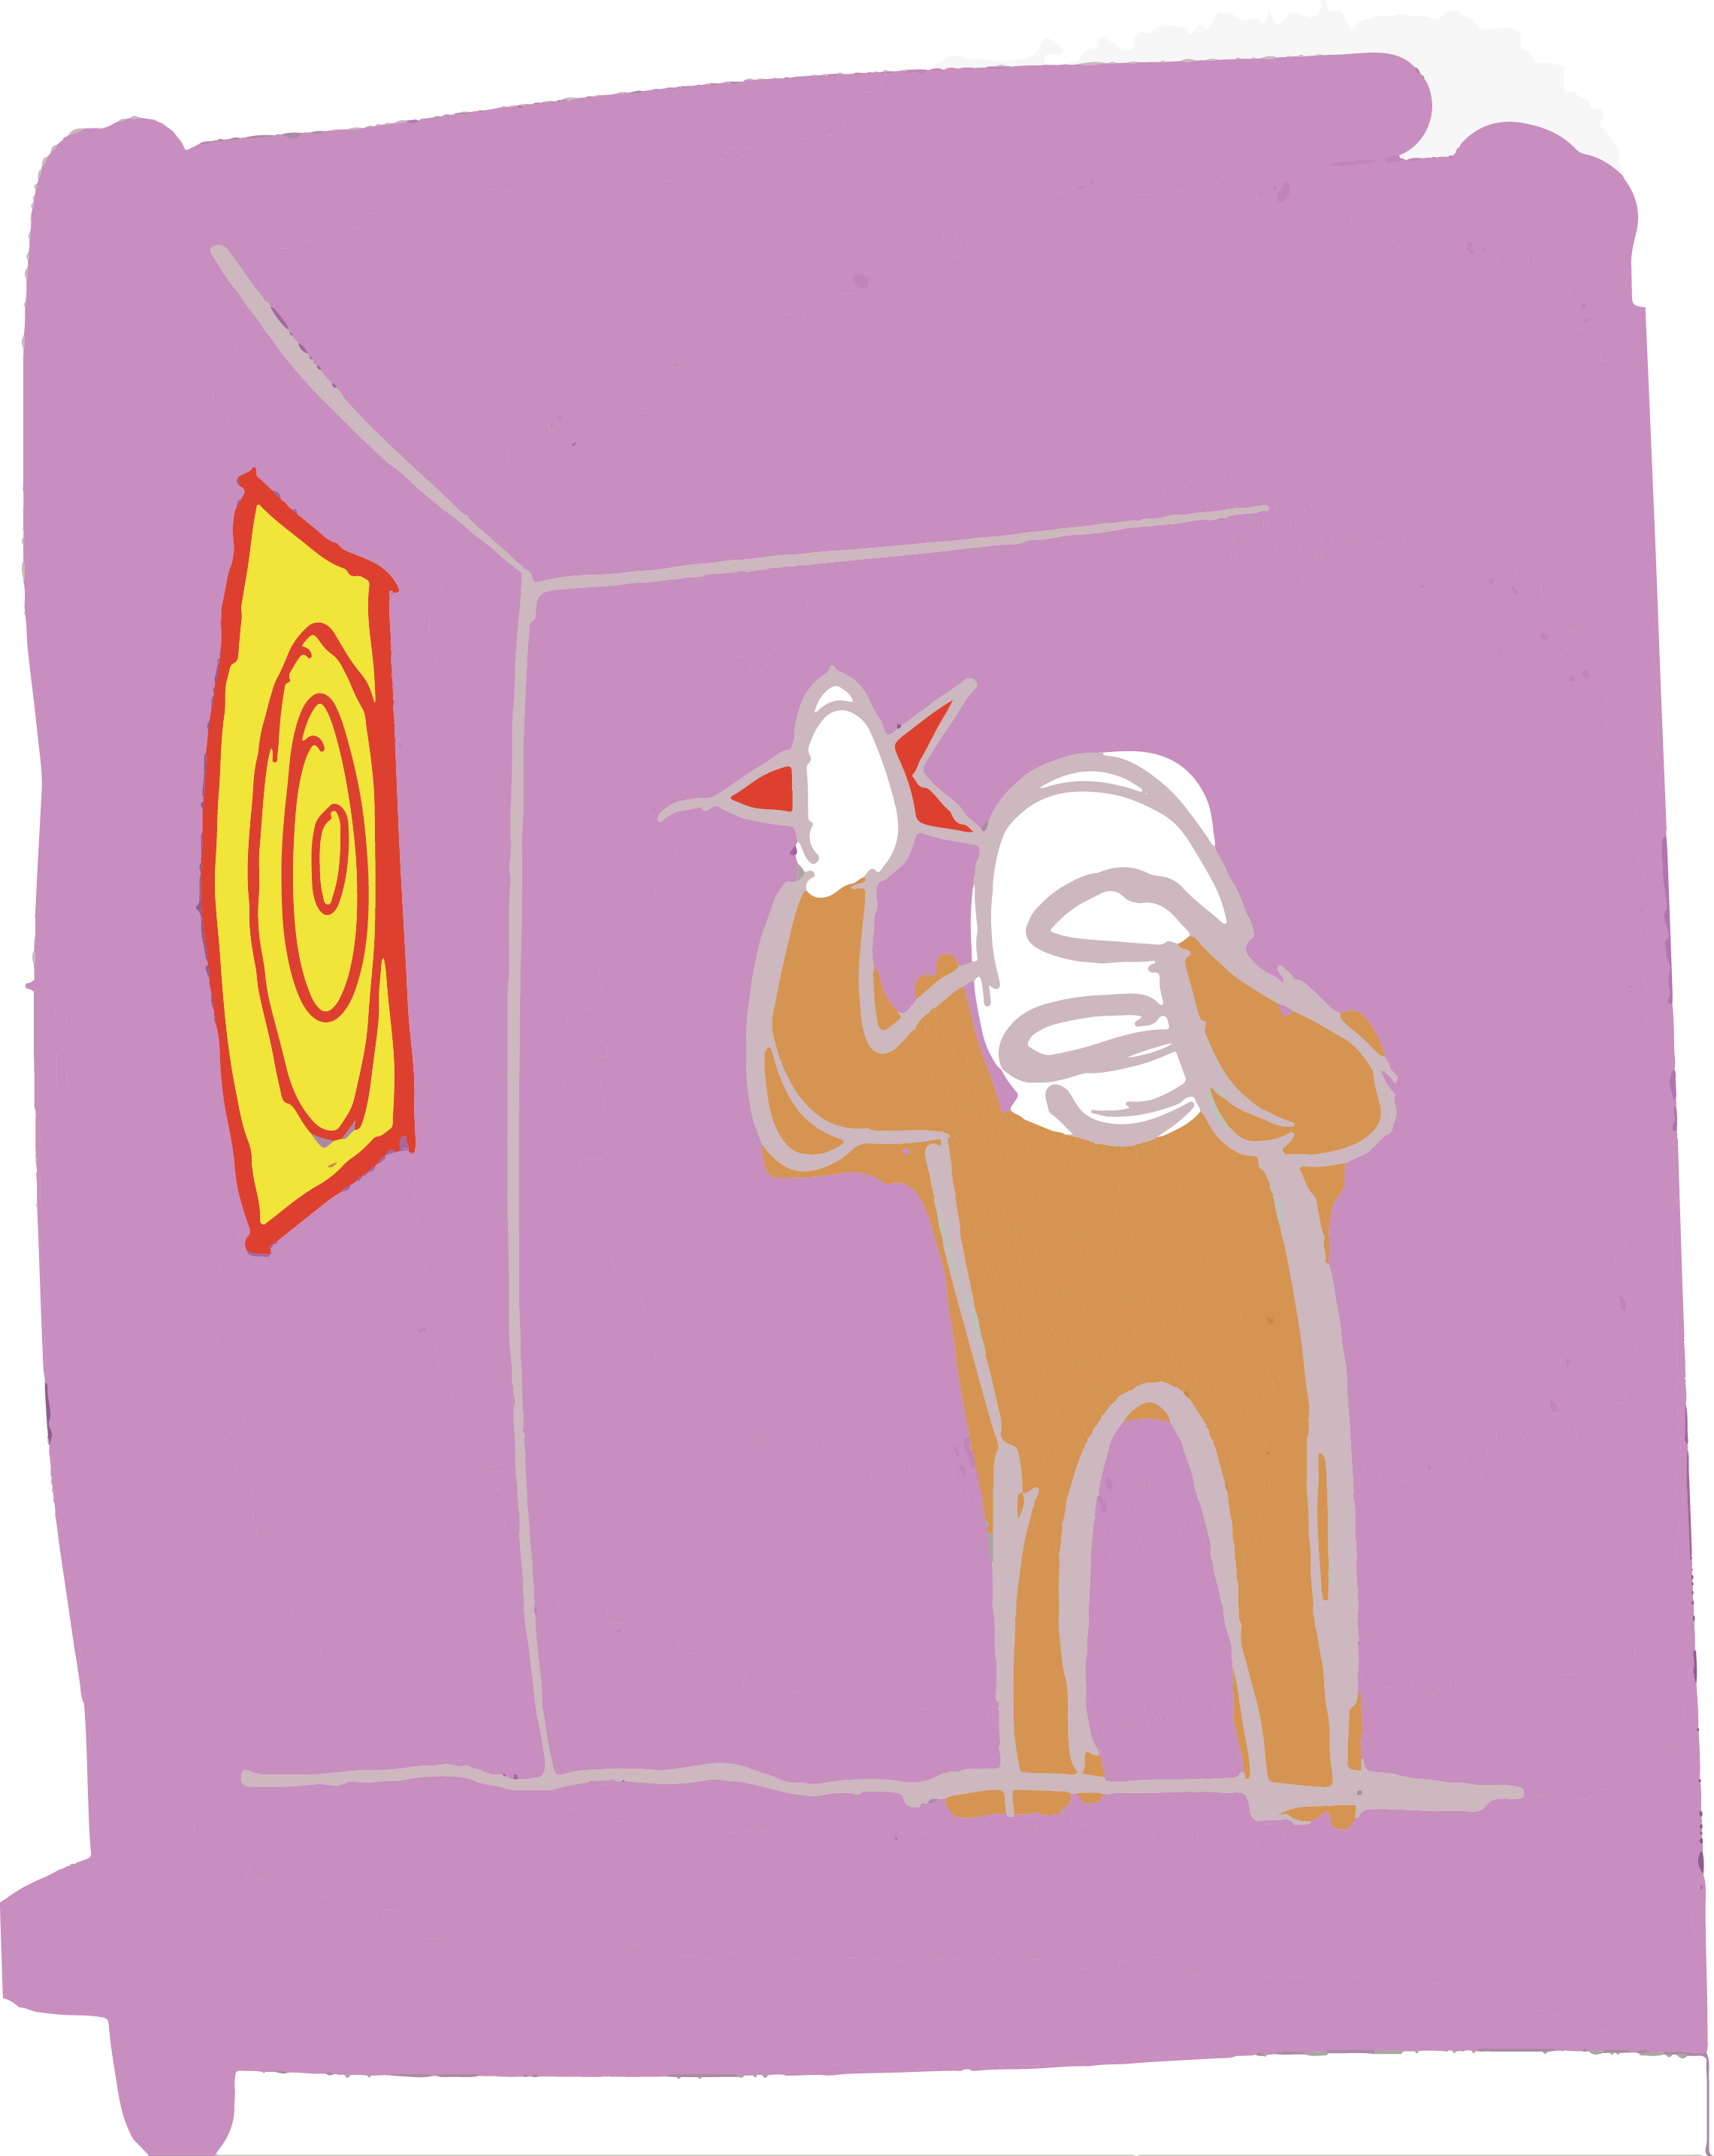 Digital illustration, purple background, someone playing darts with their hand over their eyes.